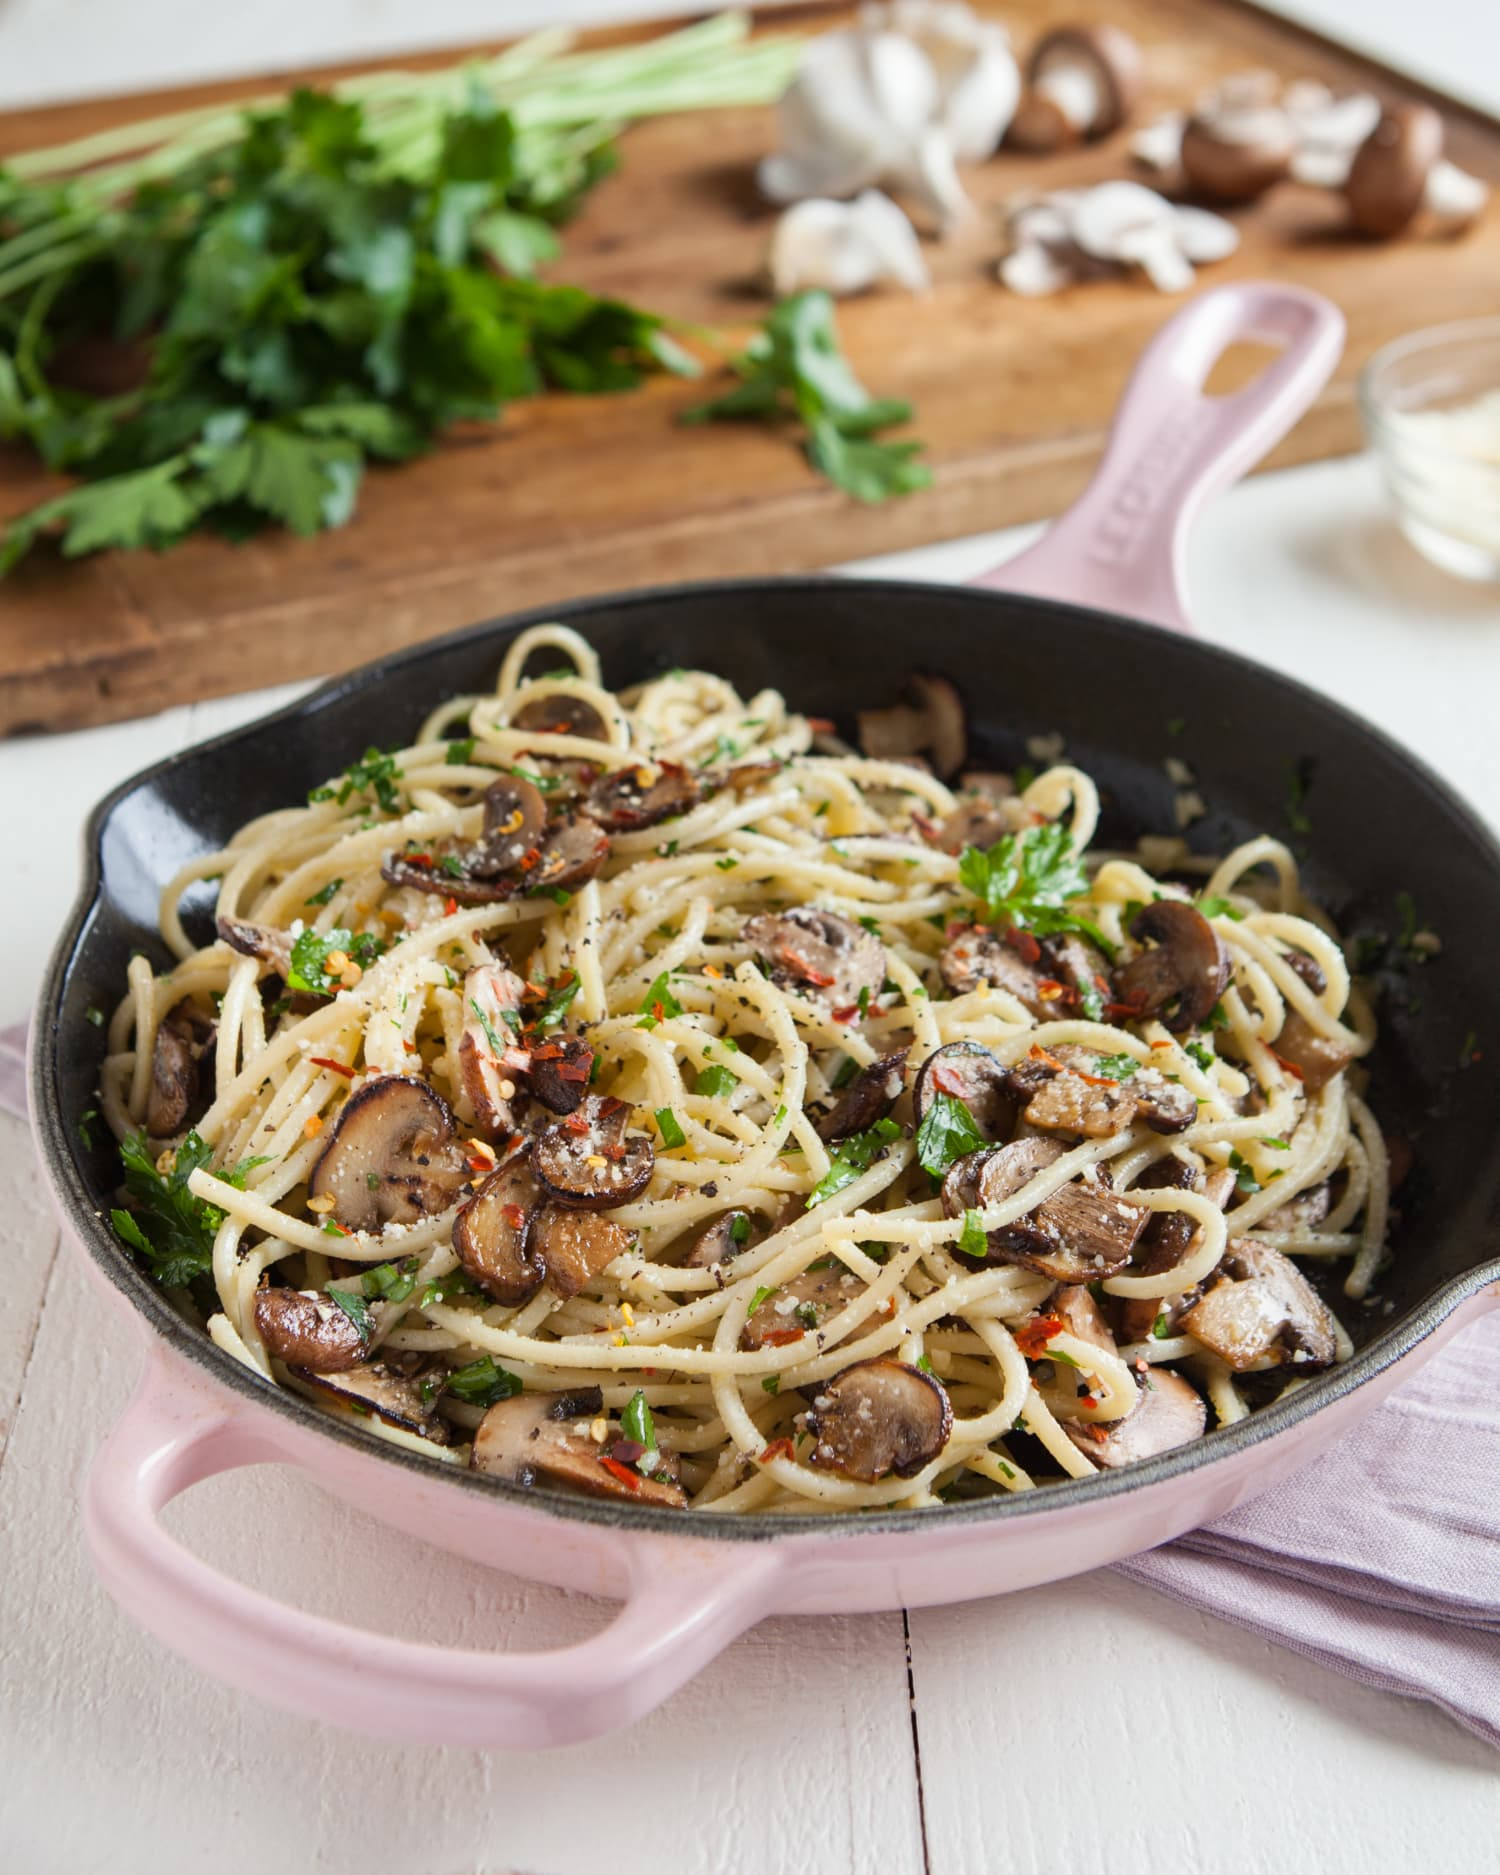 Recipe: Mushroom and Garlic Spaghetti Dinner